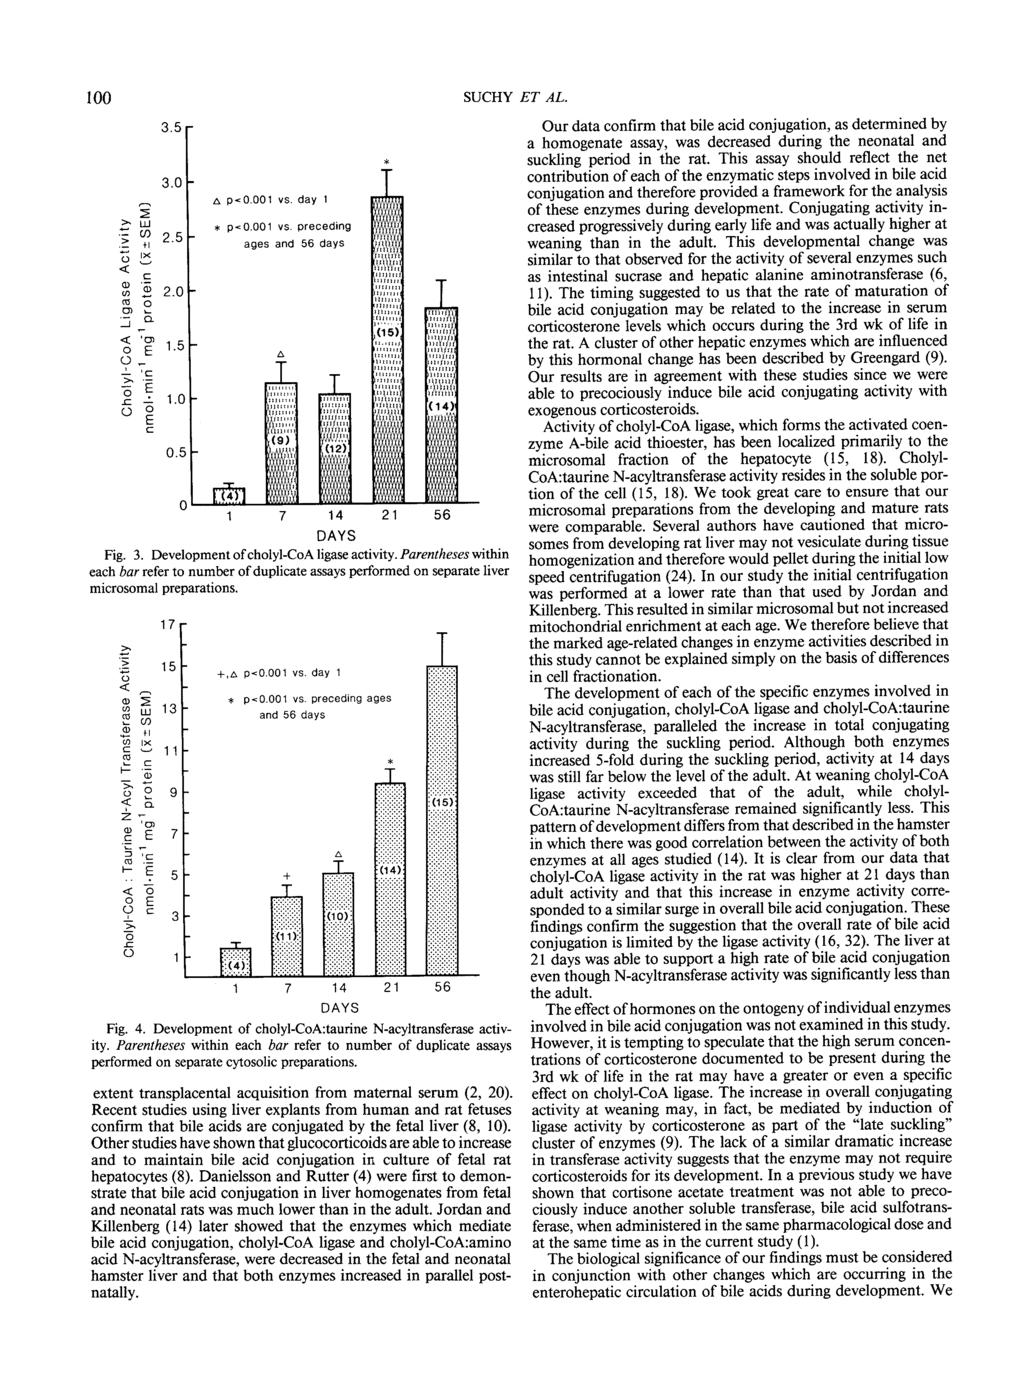 1 SUCHY A p<.1 vs. day 1 * p<.1 vs. preceding ages and 56 days 1 7 14 21 Fig. 3. Development of cholyl-coa ligase activity.